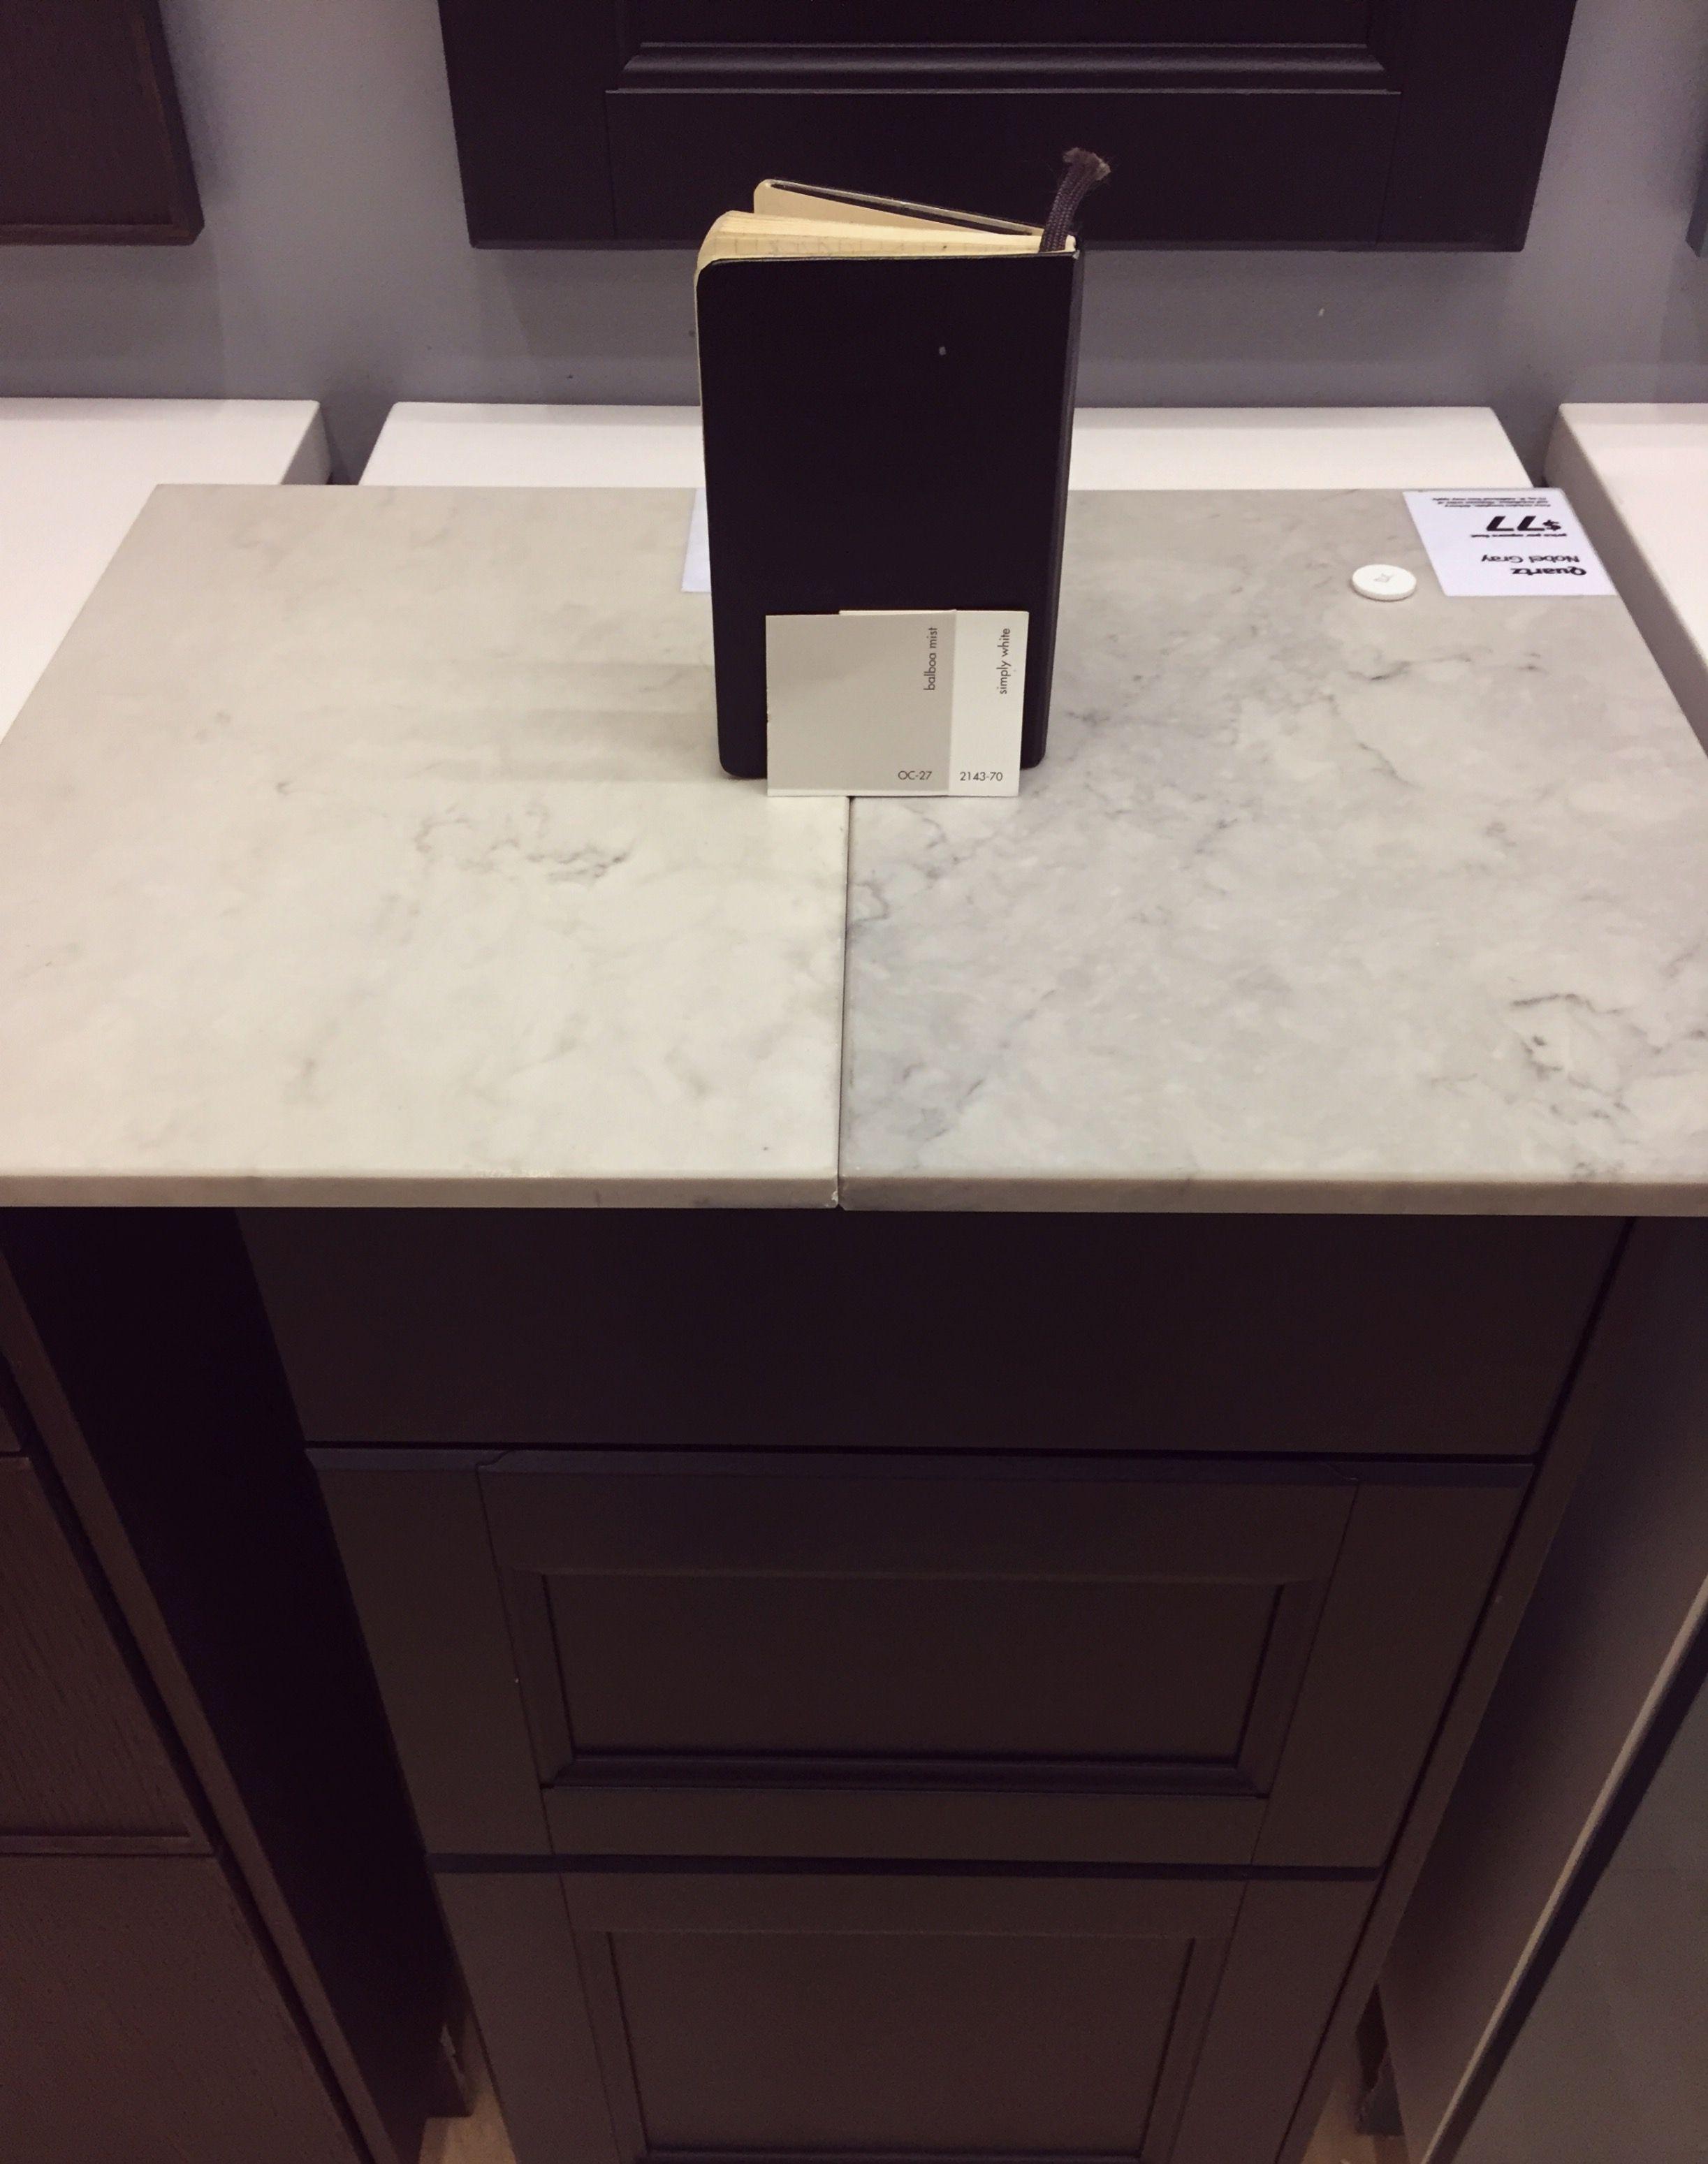 Caesarstone countertop options at ikea london grey vs for Cost of caesarstone countertops